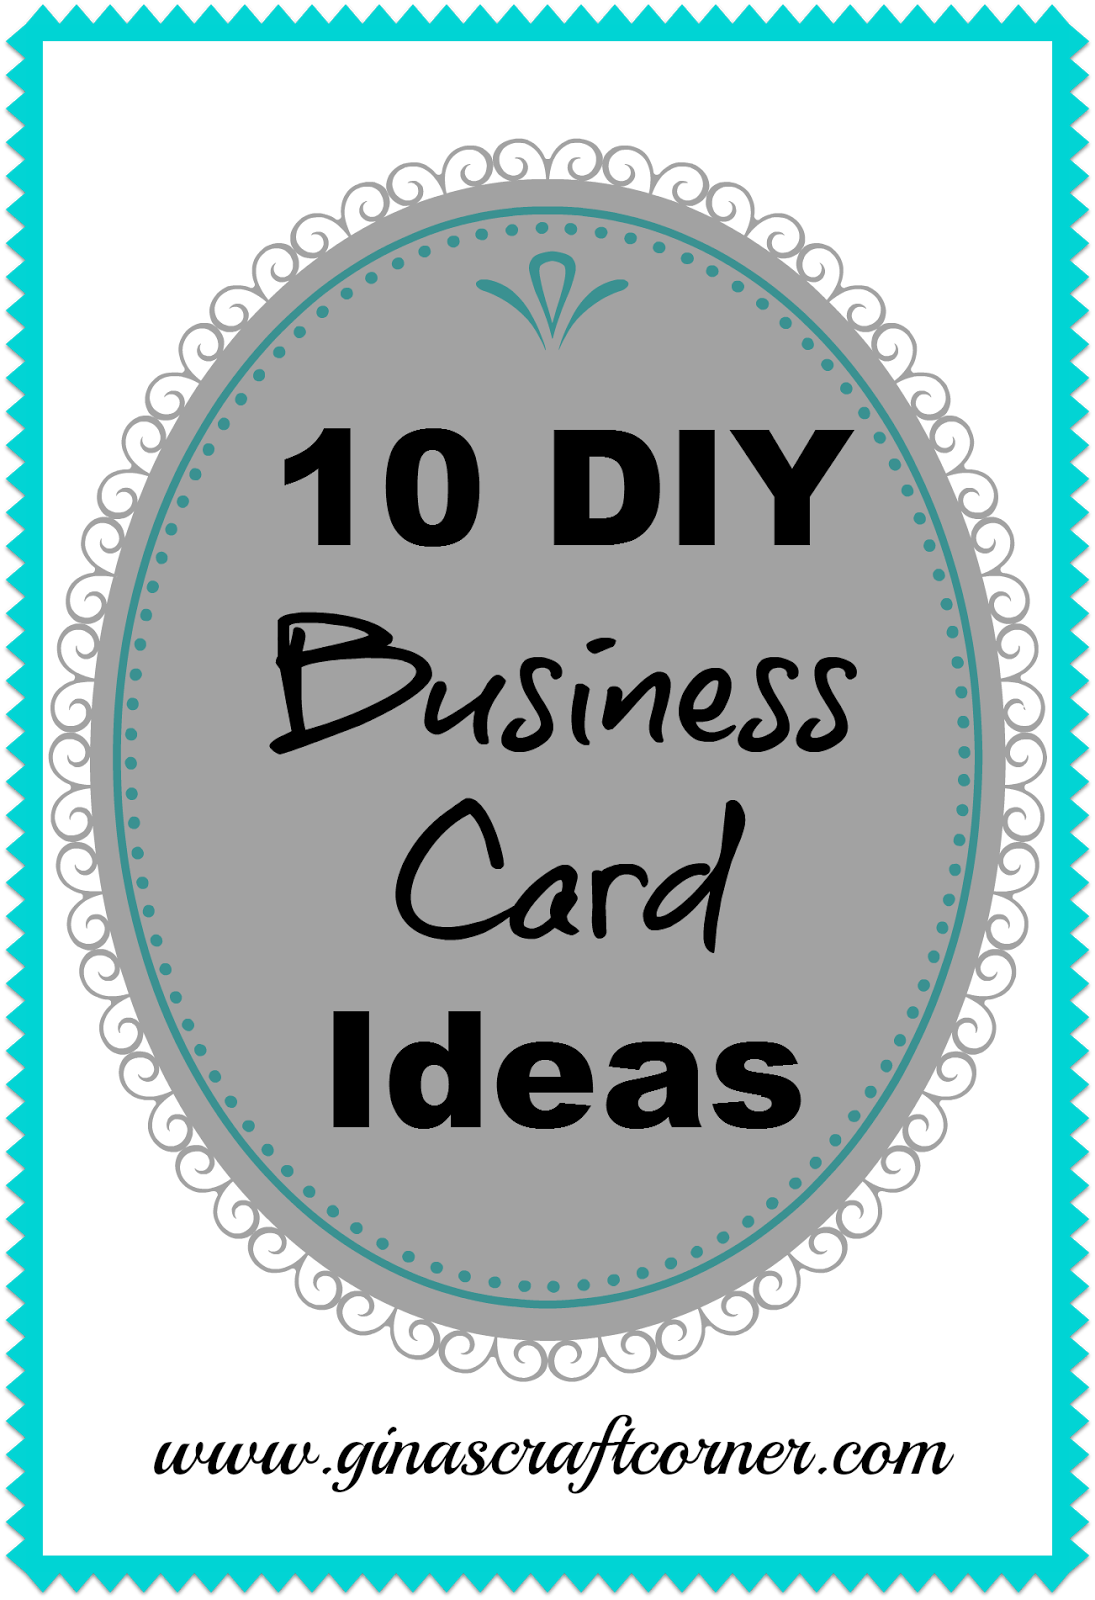 10 DIY Business Card Ideas